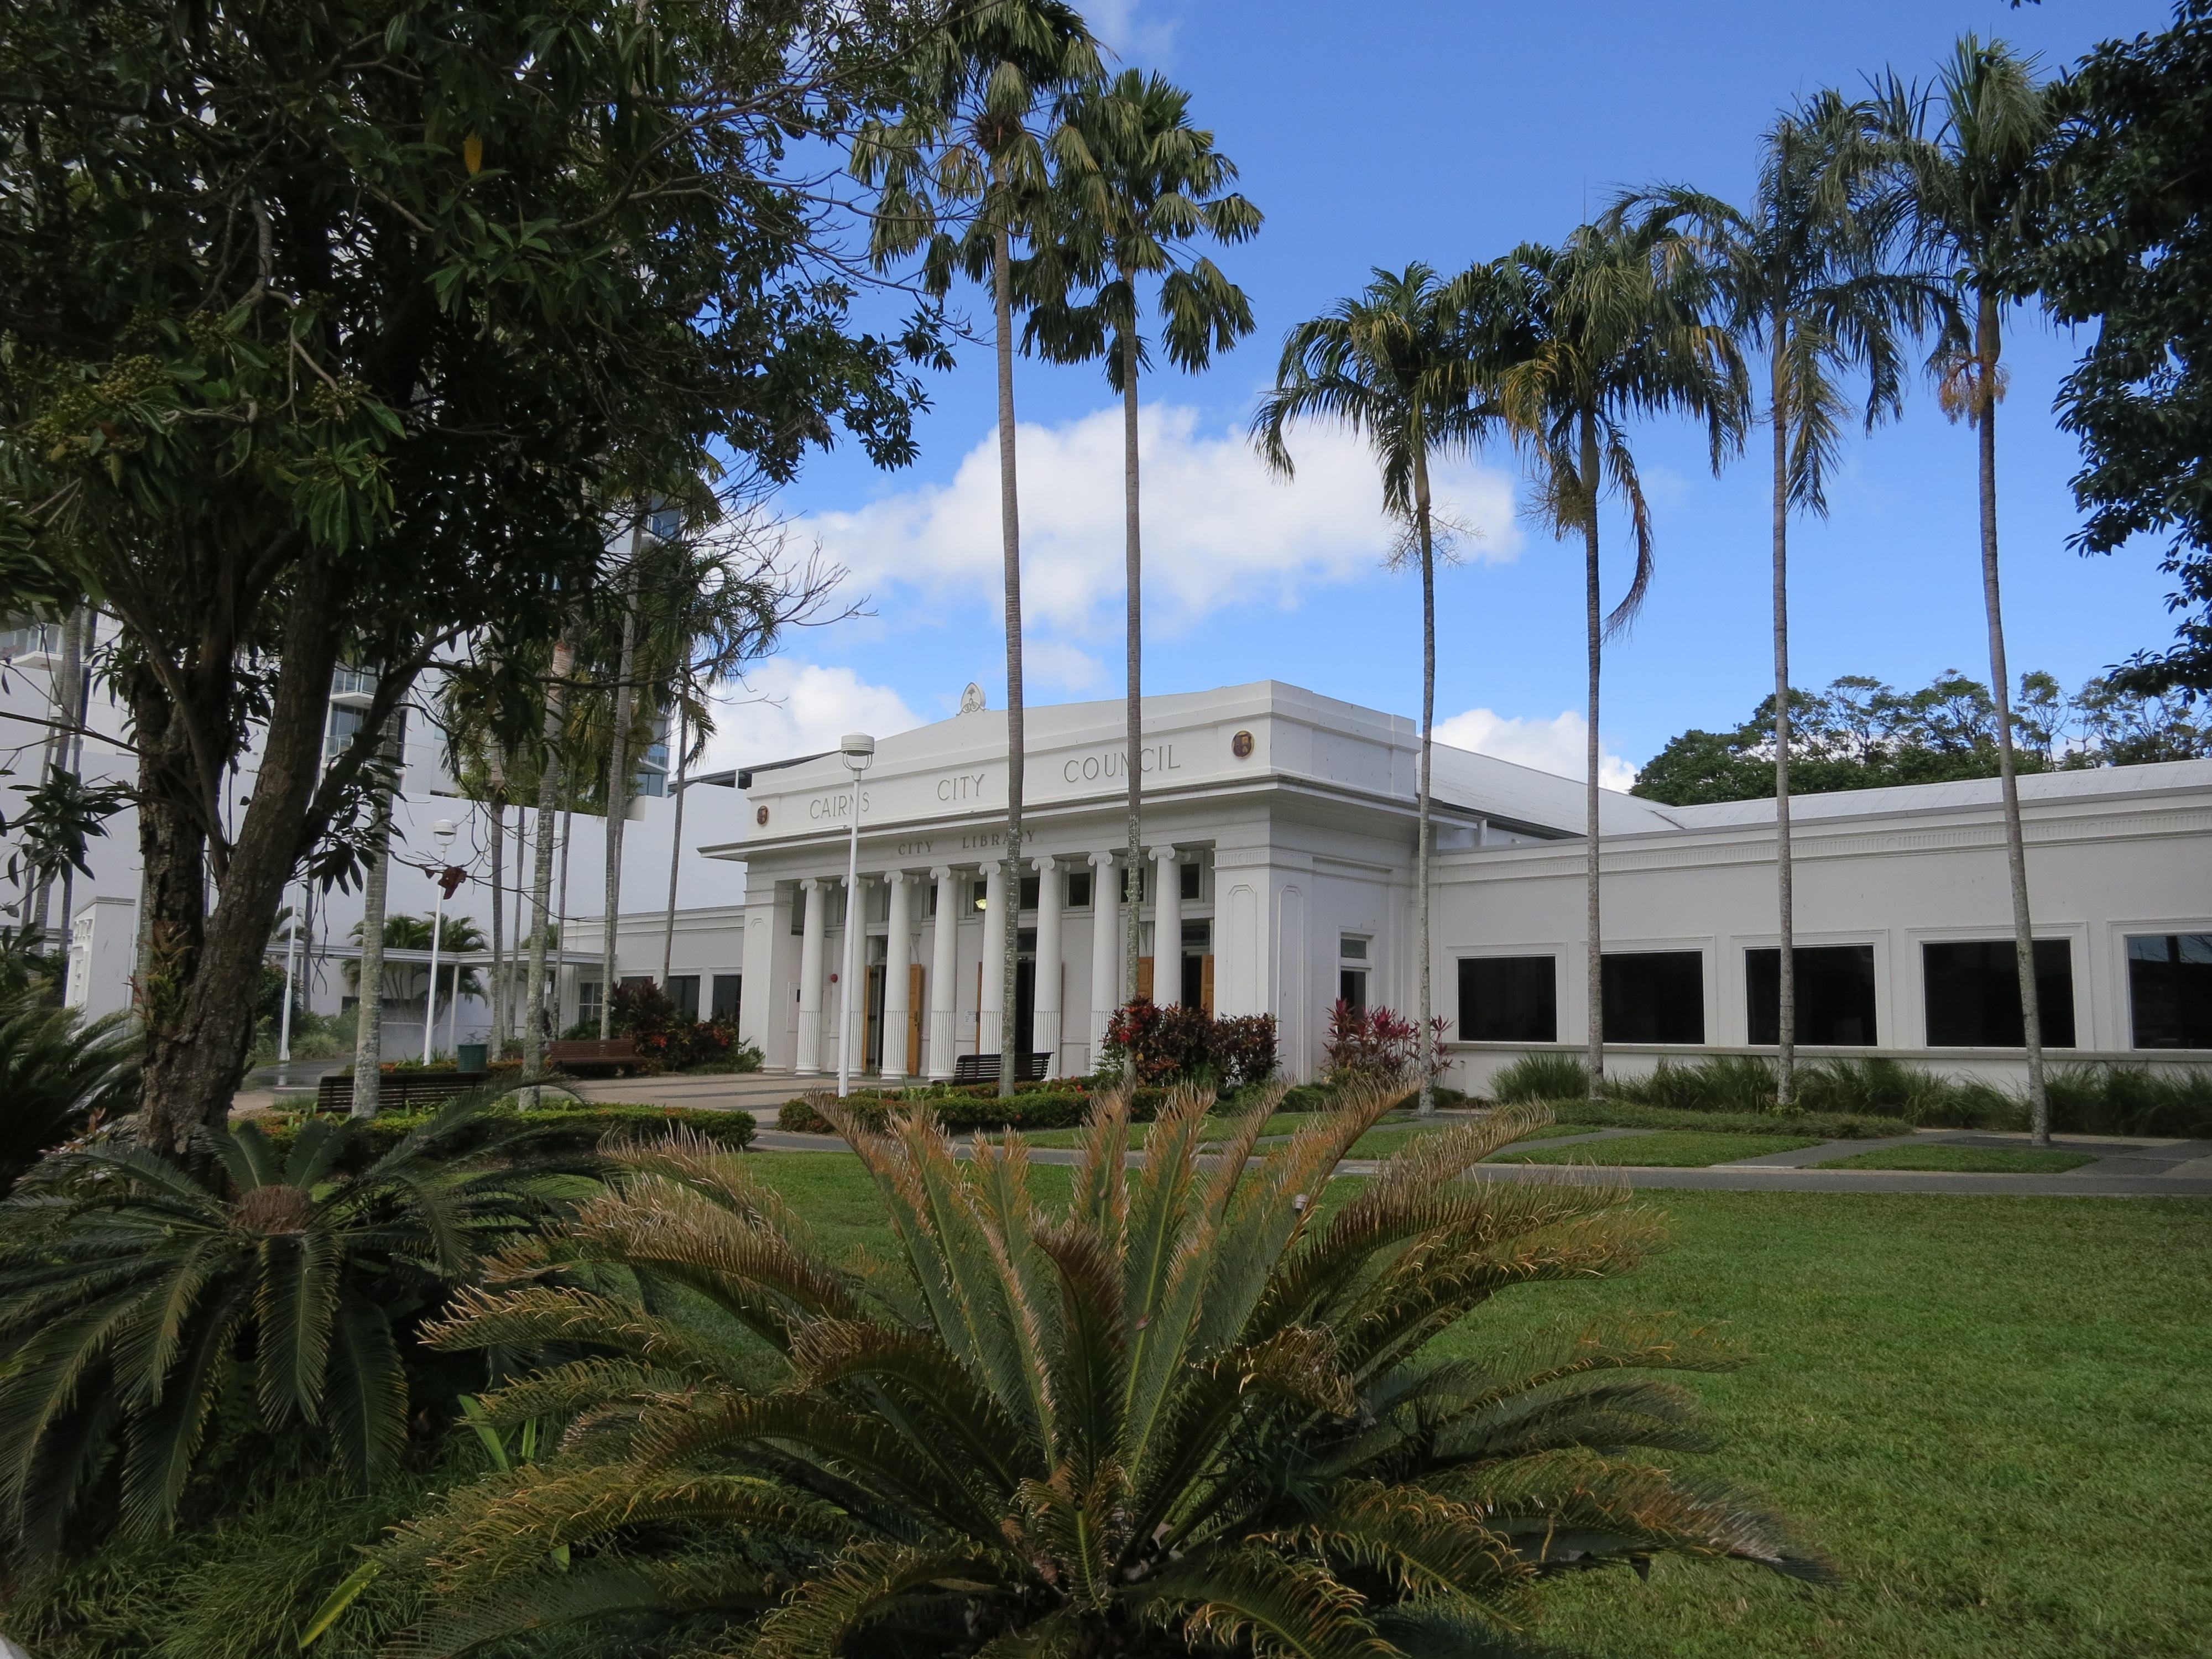 File:city Library Cairns